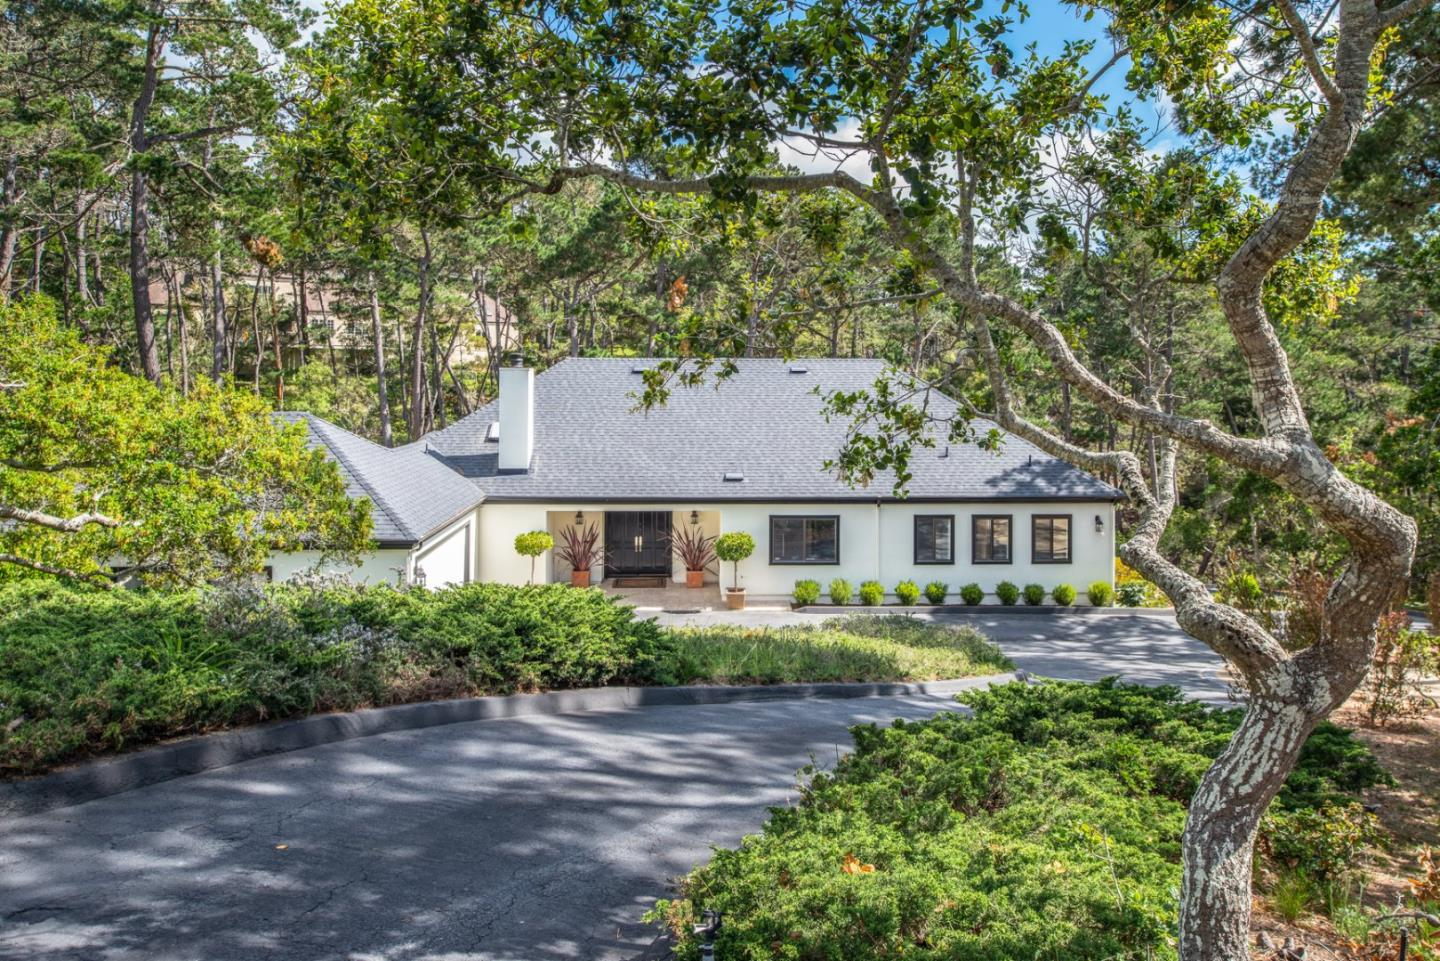 1642 Sonado Road - Pebble Beach, California